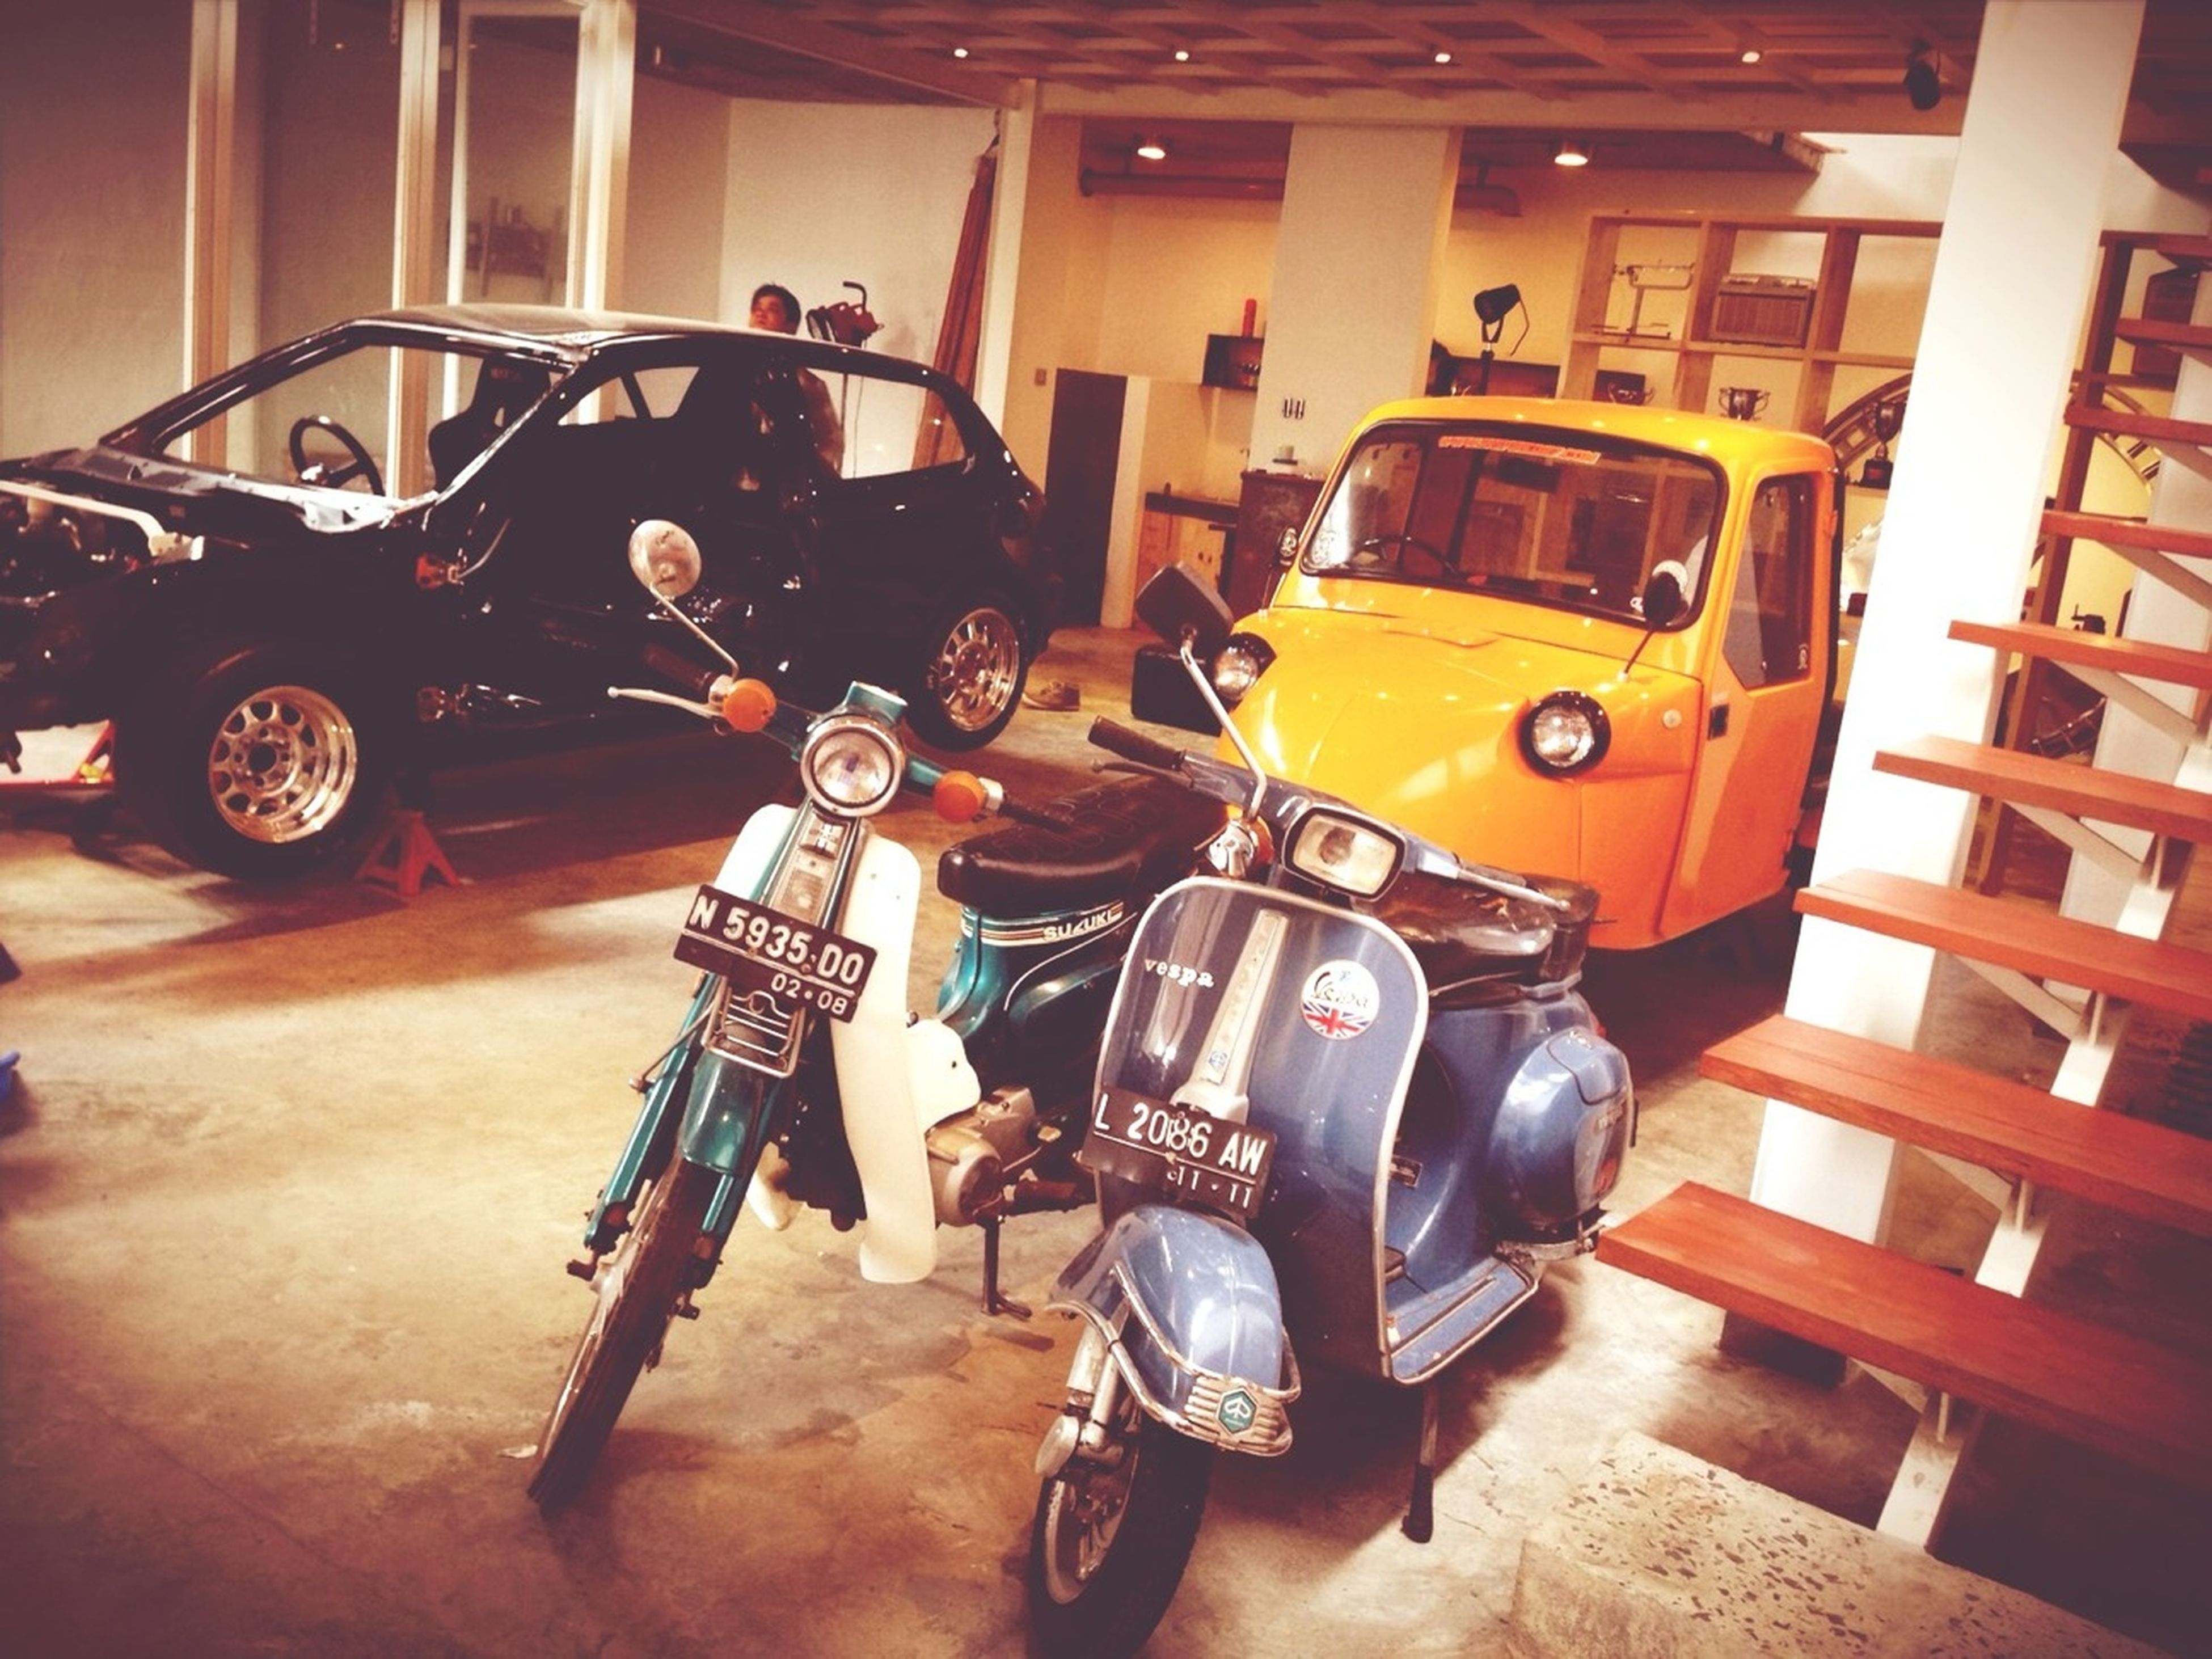 indoors, land vehicle, transportation, mode of transport, technology, bicycle, arts culture and entertainment, retro styled, old-fashioned, stationary, car, parking, music, architecture, equipment, motorcycle, built structure, men